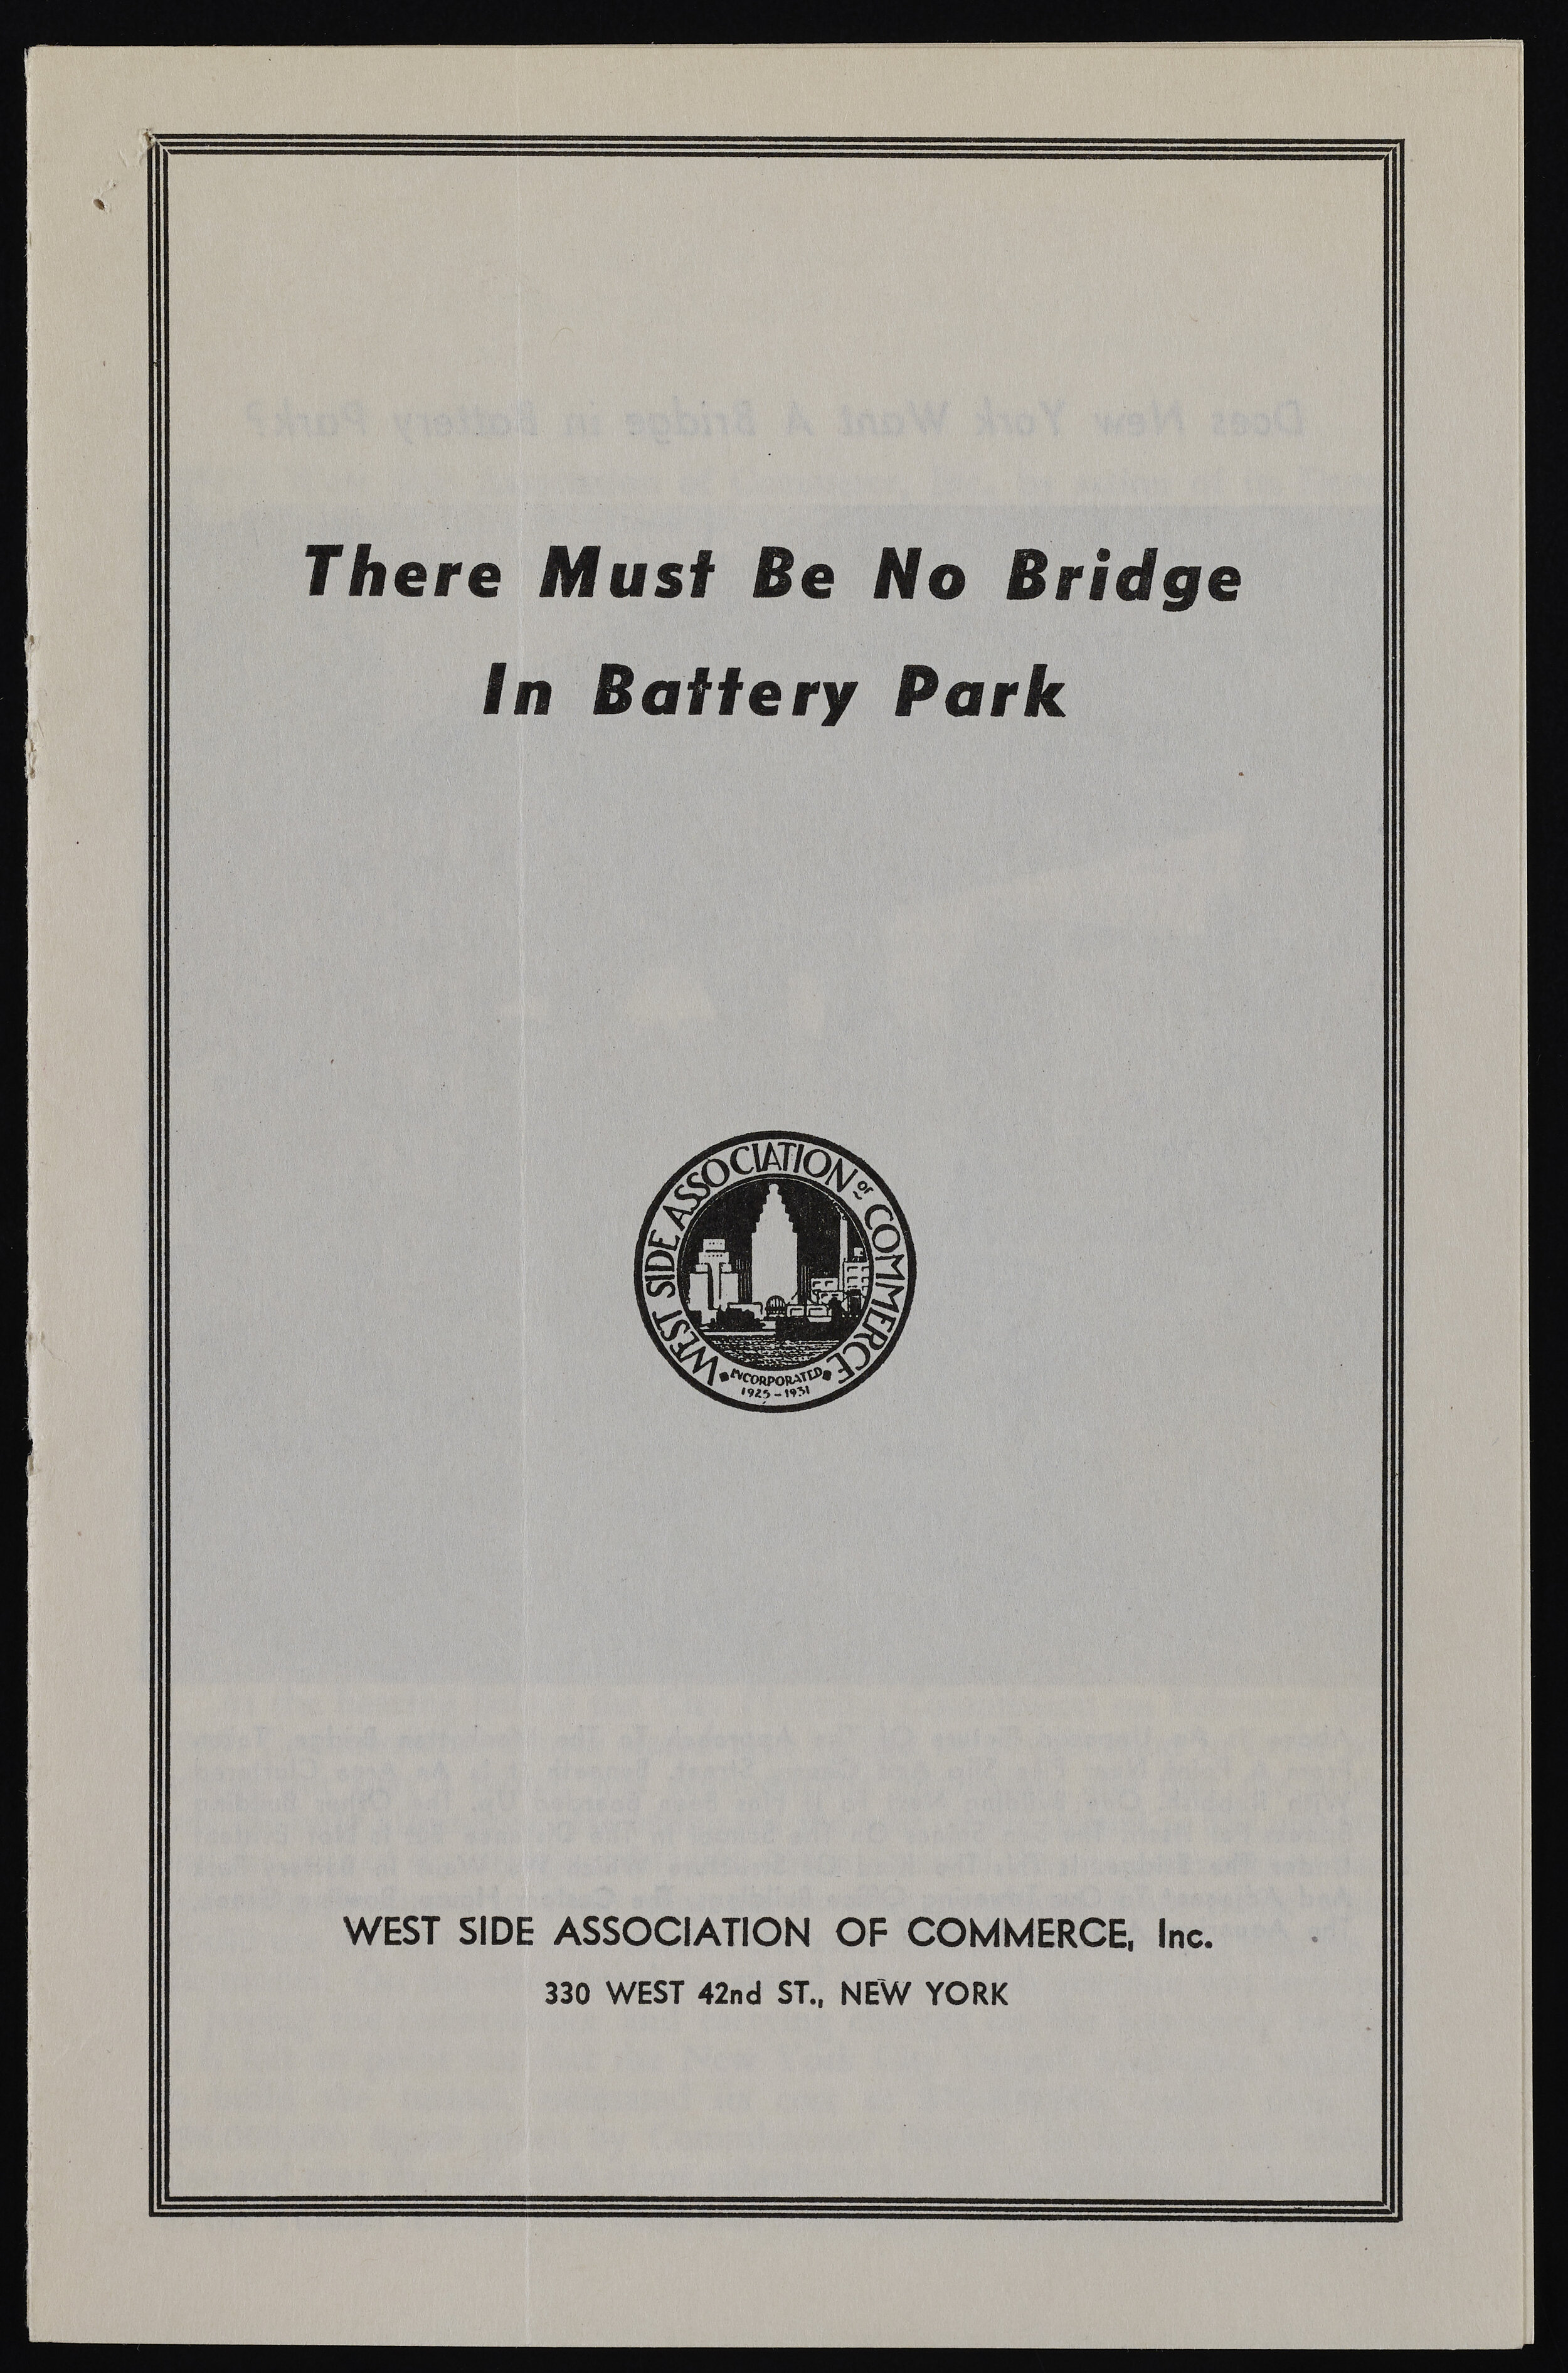 """""""There Must Be No Bridge,"""" Pamphlet, West Side Association of Commerce, Inc. Mayor LaGuardia papers, subject files, NYC Municipal Archives."""